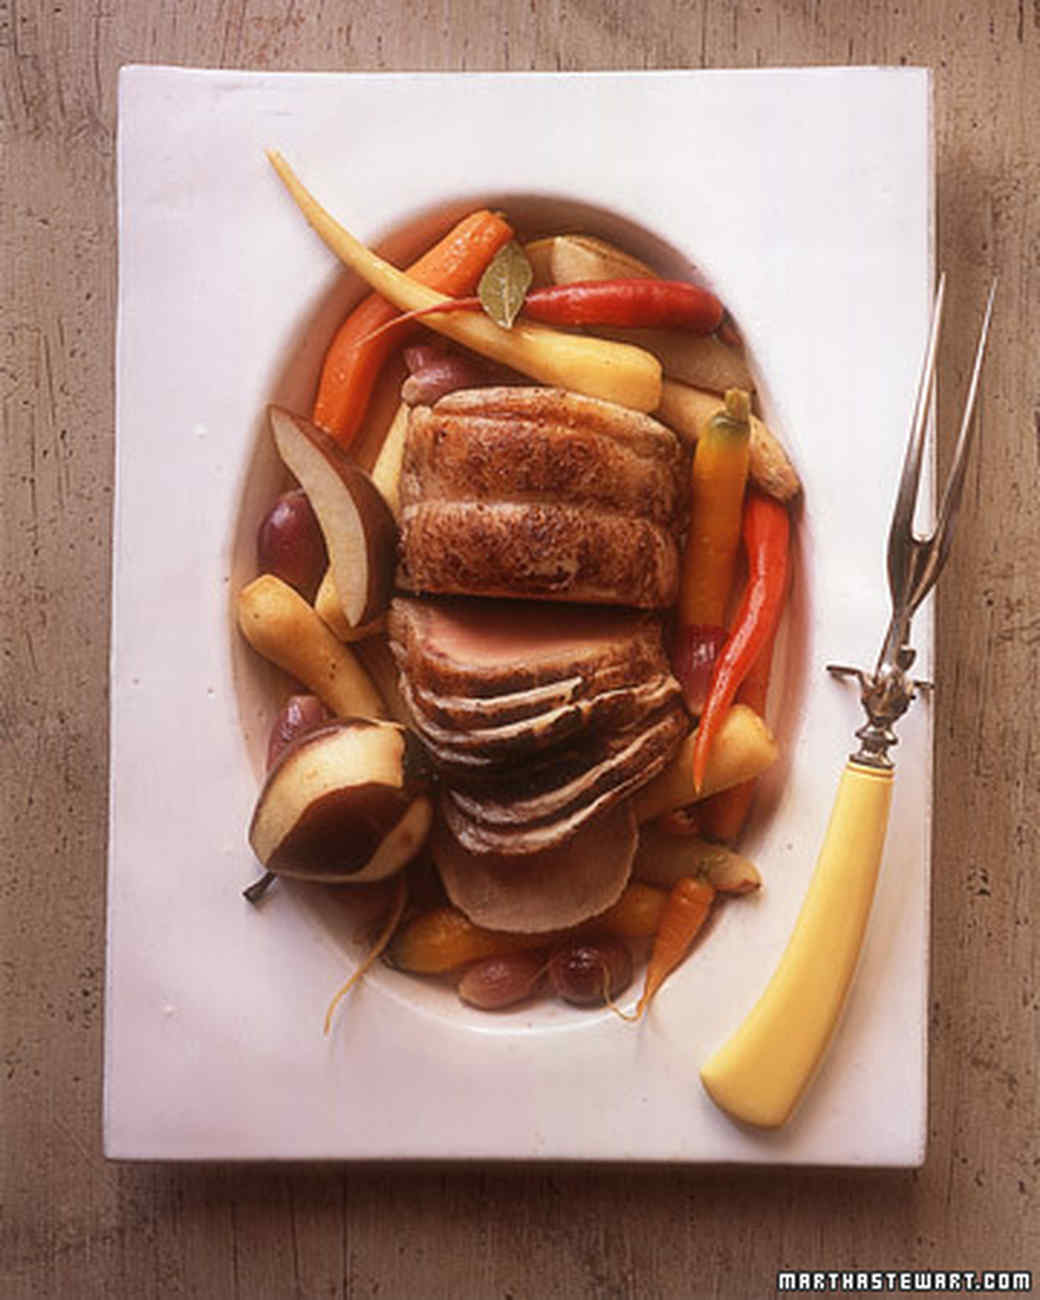 Braised Pork Loin with Pears